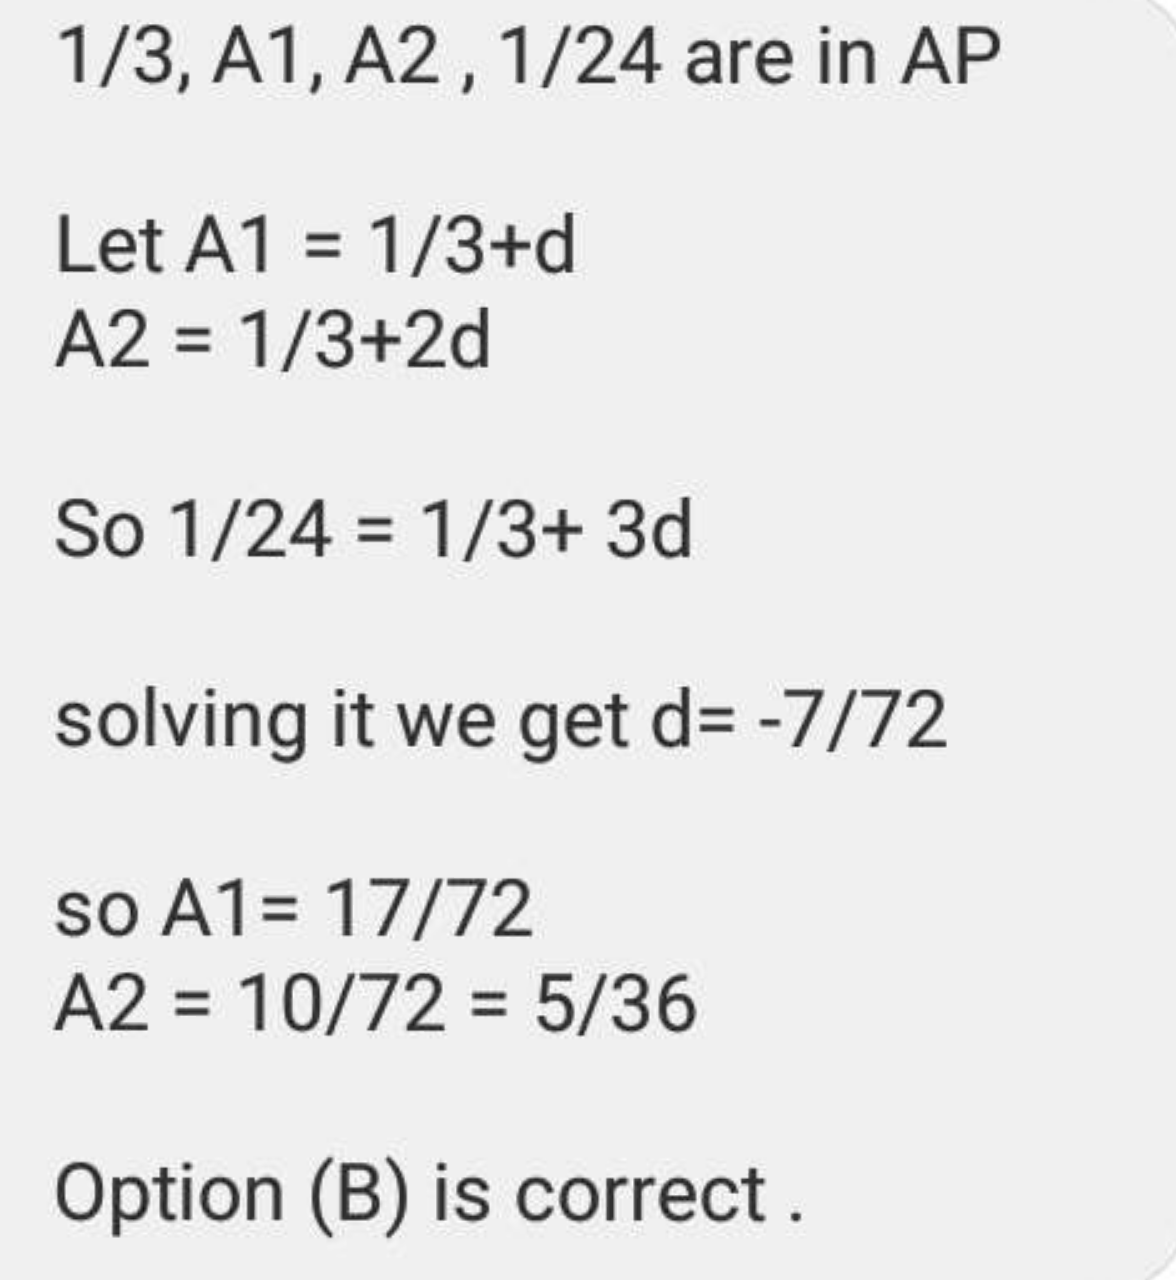 Q.32 If A,, A, be two arithmetic means between 1/3 and 1